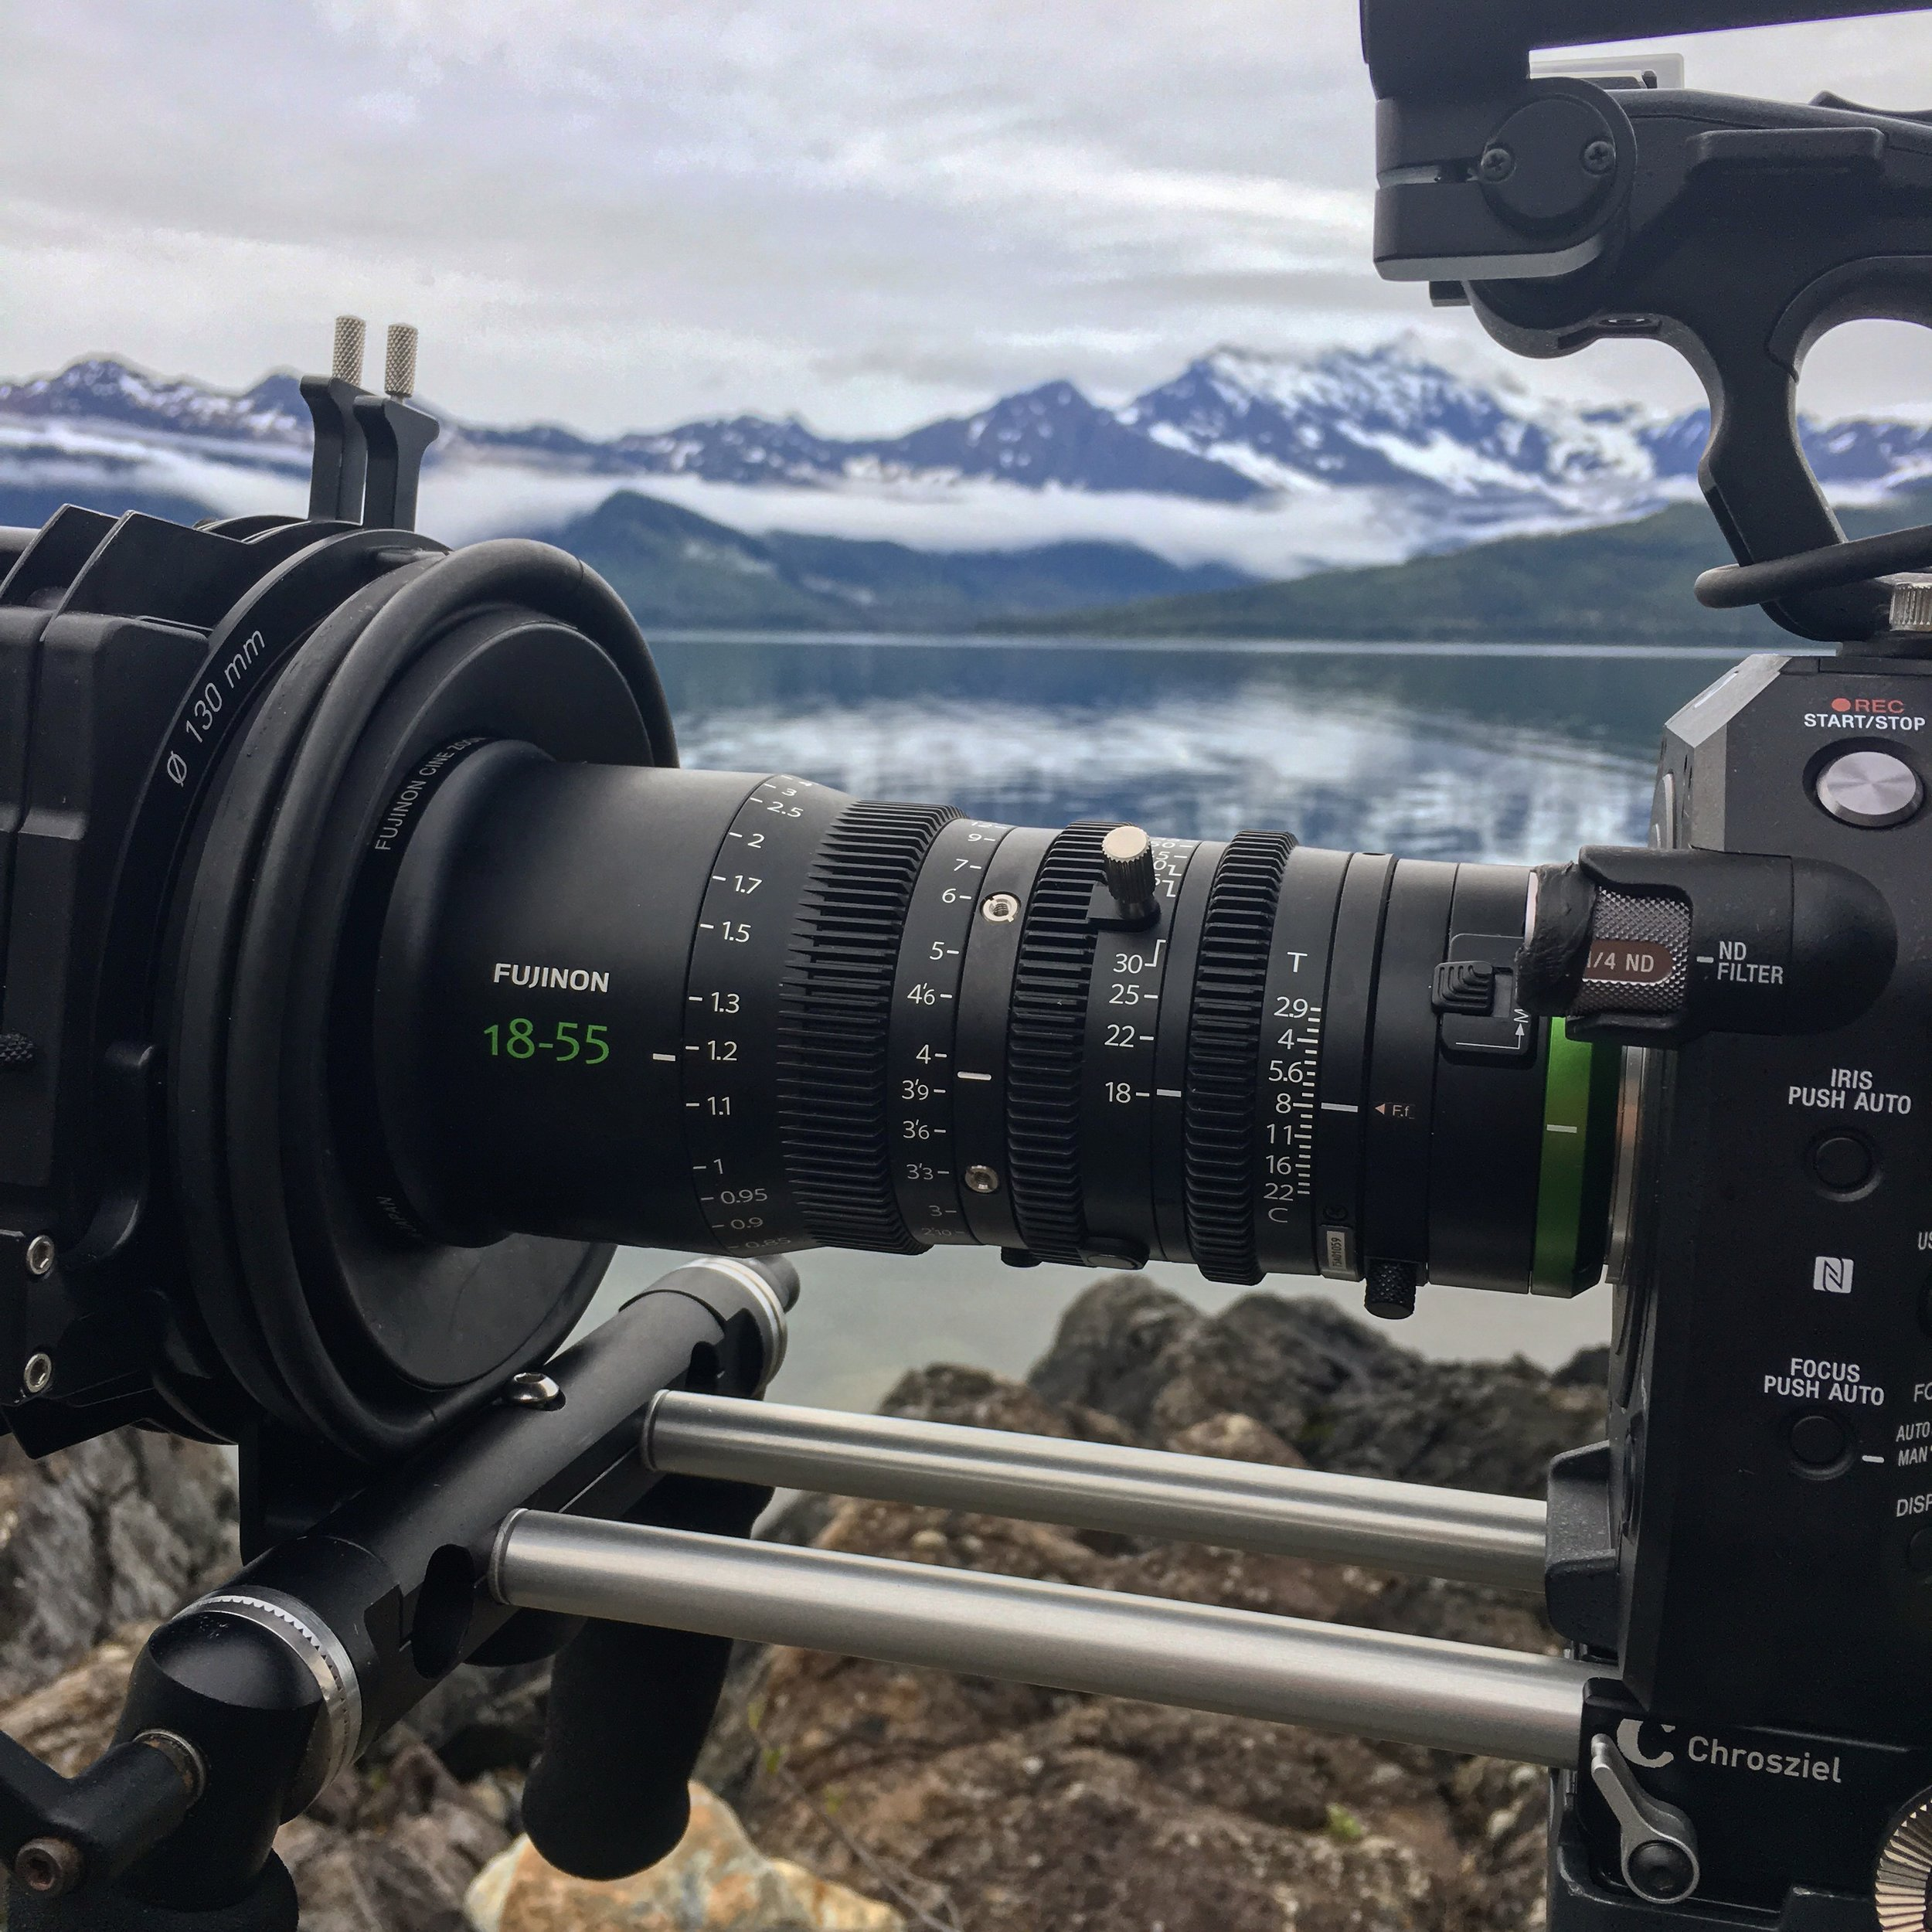 Mark's camera set up for much of the filming:Sony FS7 and Fujinon MK18-55mm, with Chrosziel plate, 15mm bars and mattebox, plus Ronford-Baker moose bars.